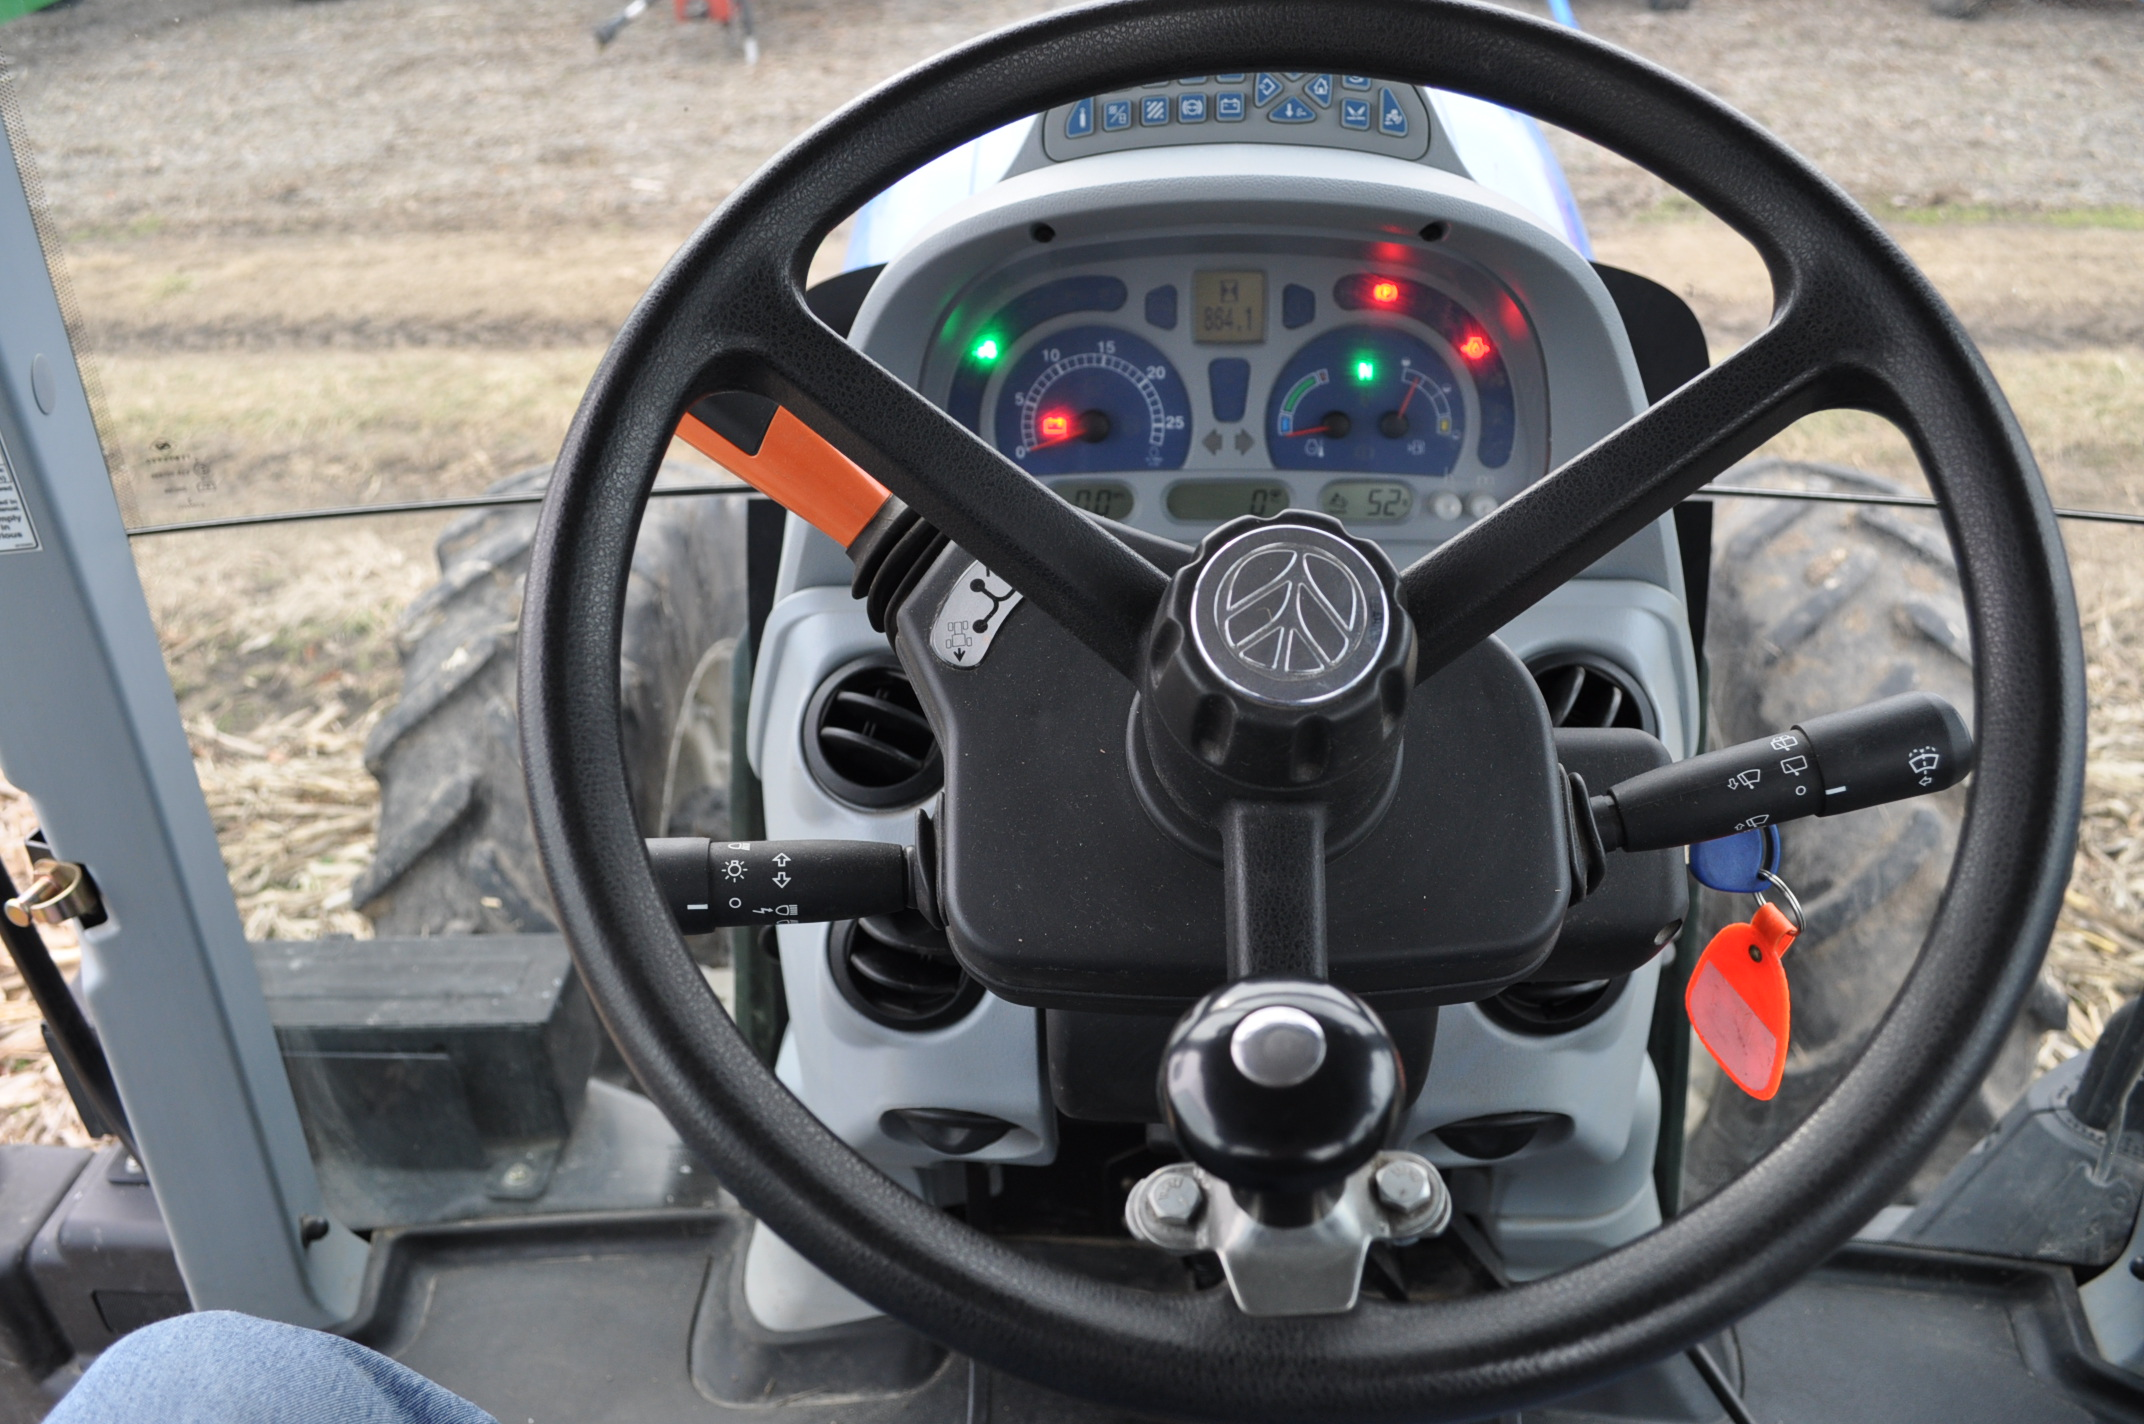 New Holland T7.210 MFWD tractor, 460/85 R 42 rear, 380/85 R 30 Firestone front, Super Steer - Image 21 of 24